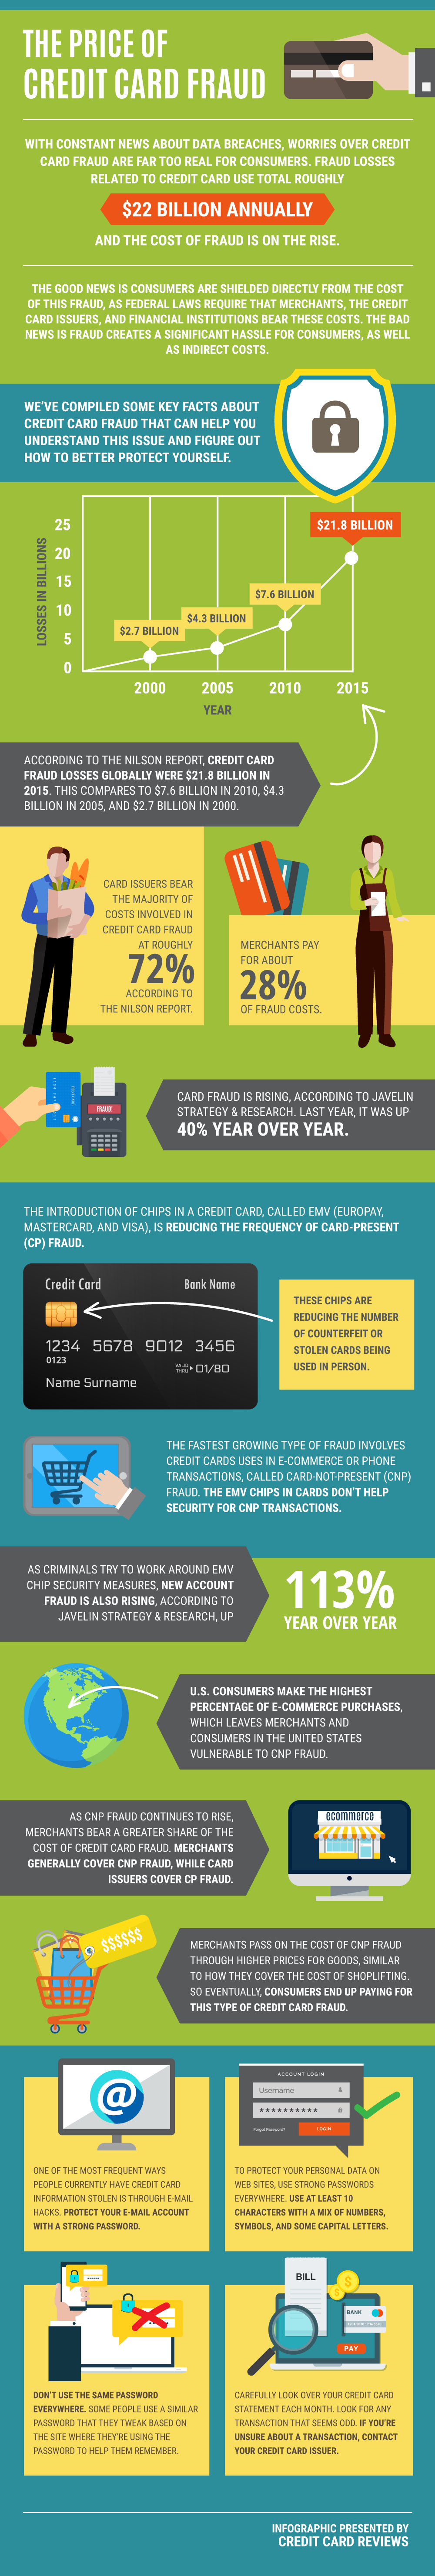 The Price of Credit Card Fraud